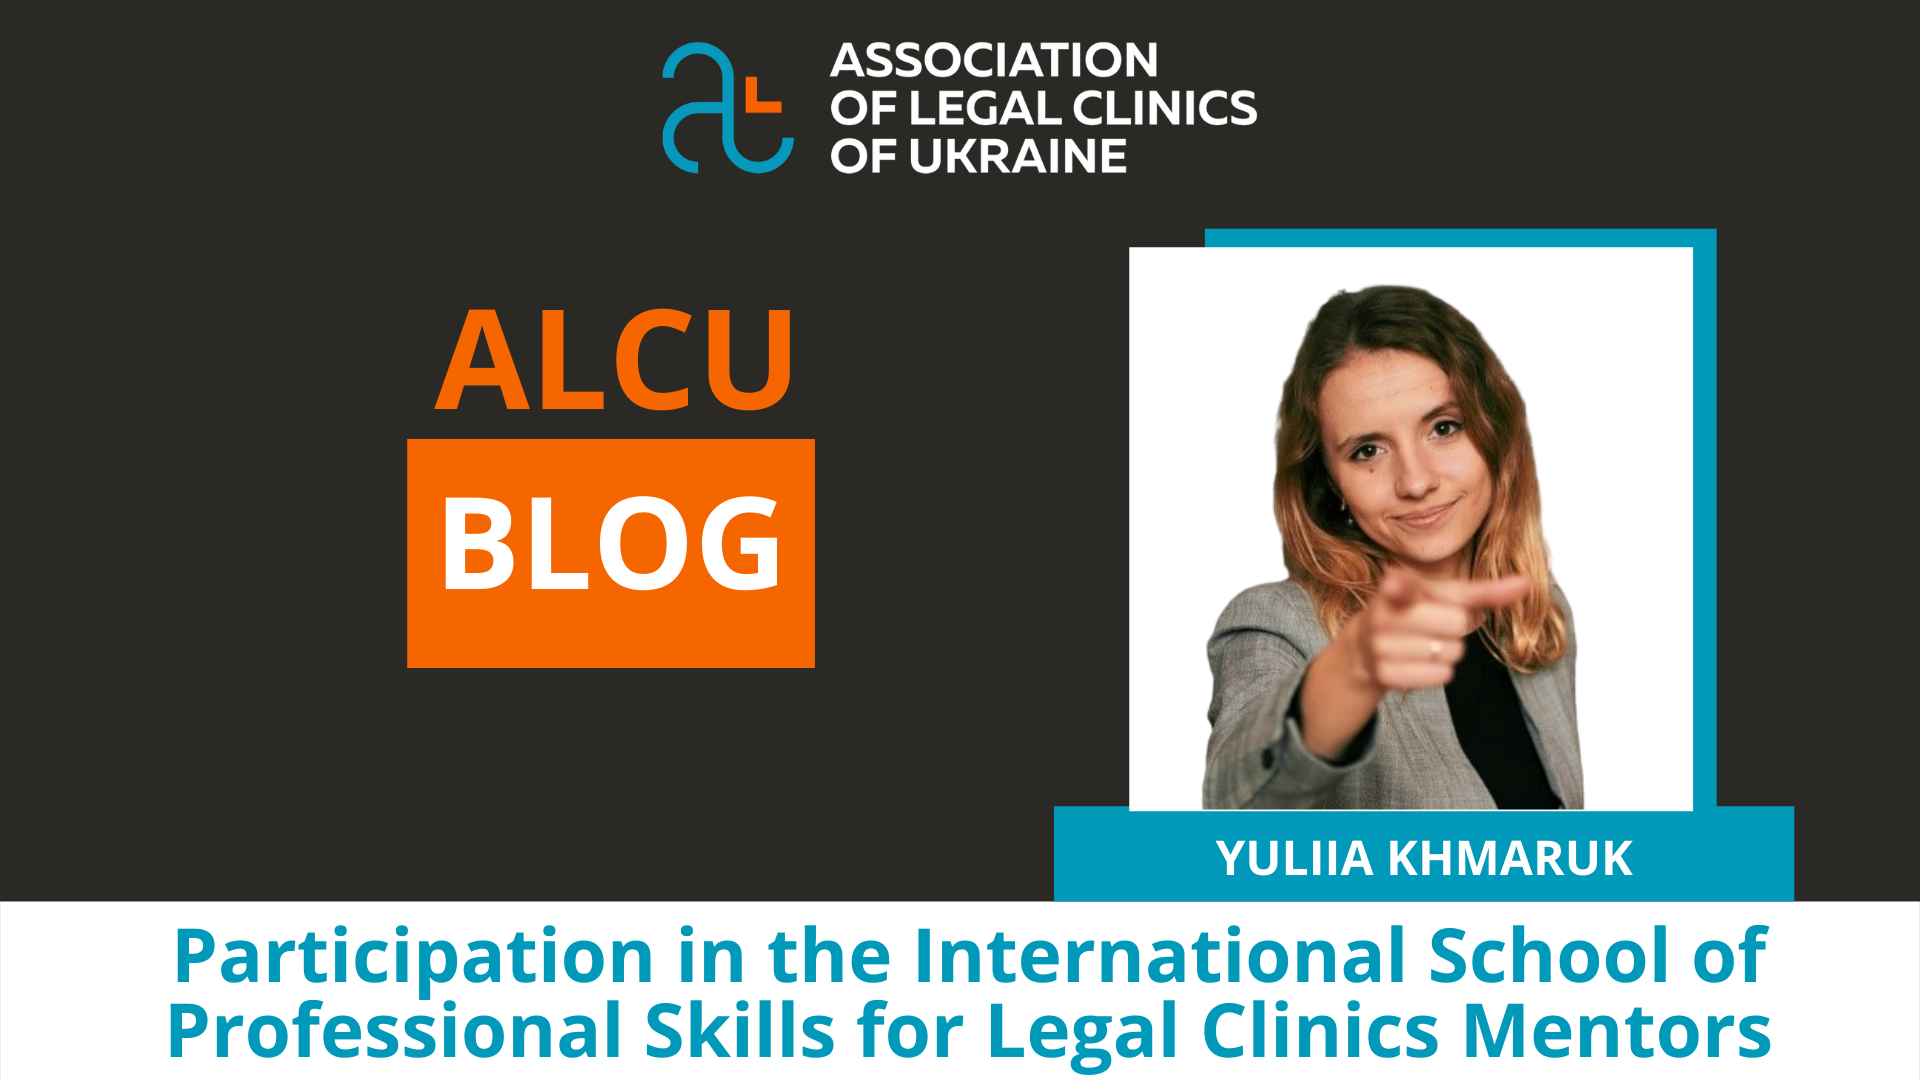 Participation in the International School of Professional Skills for Legal Clinics Mentors